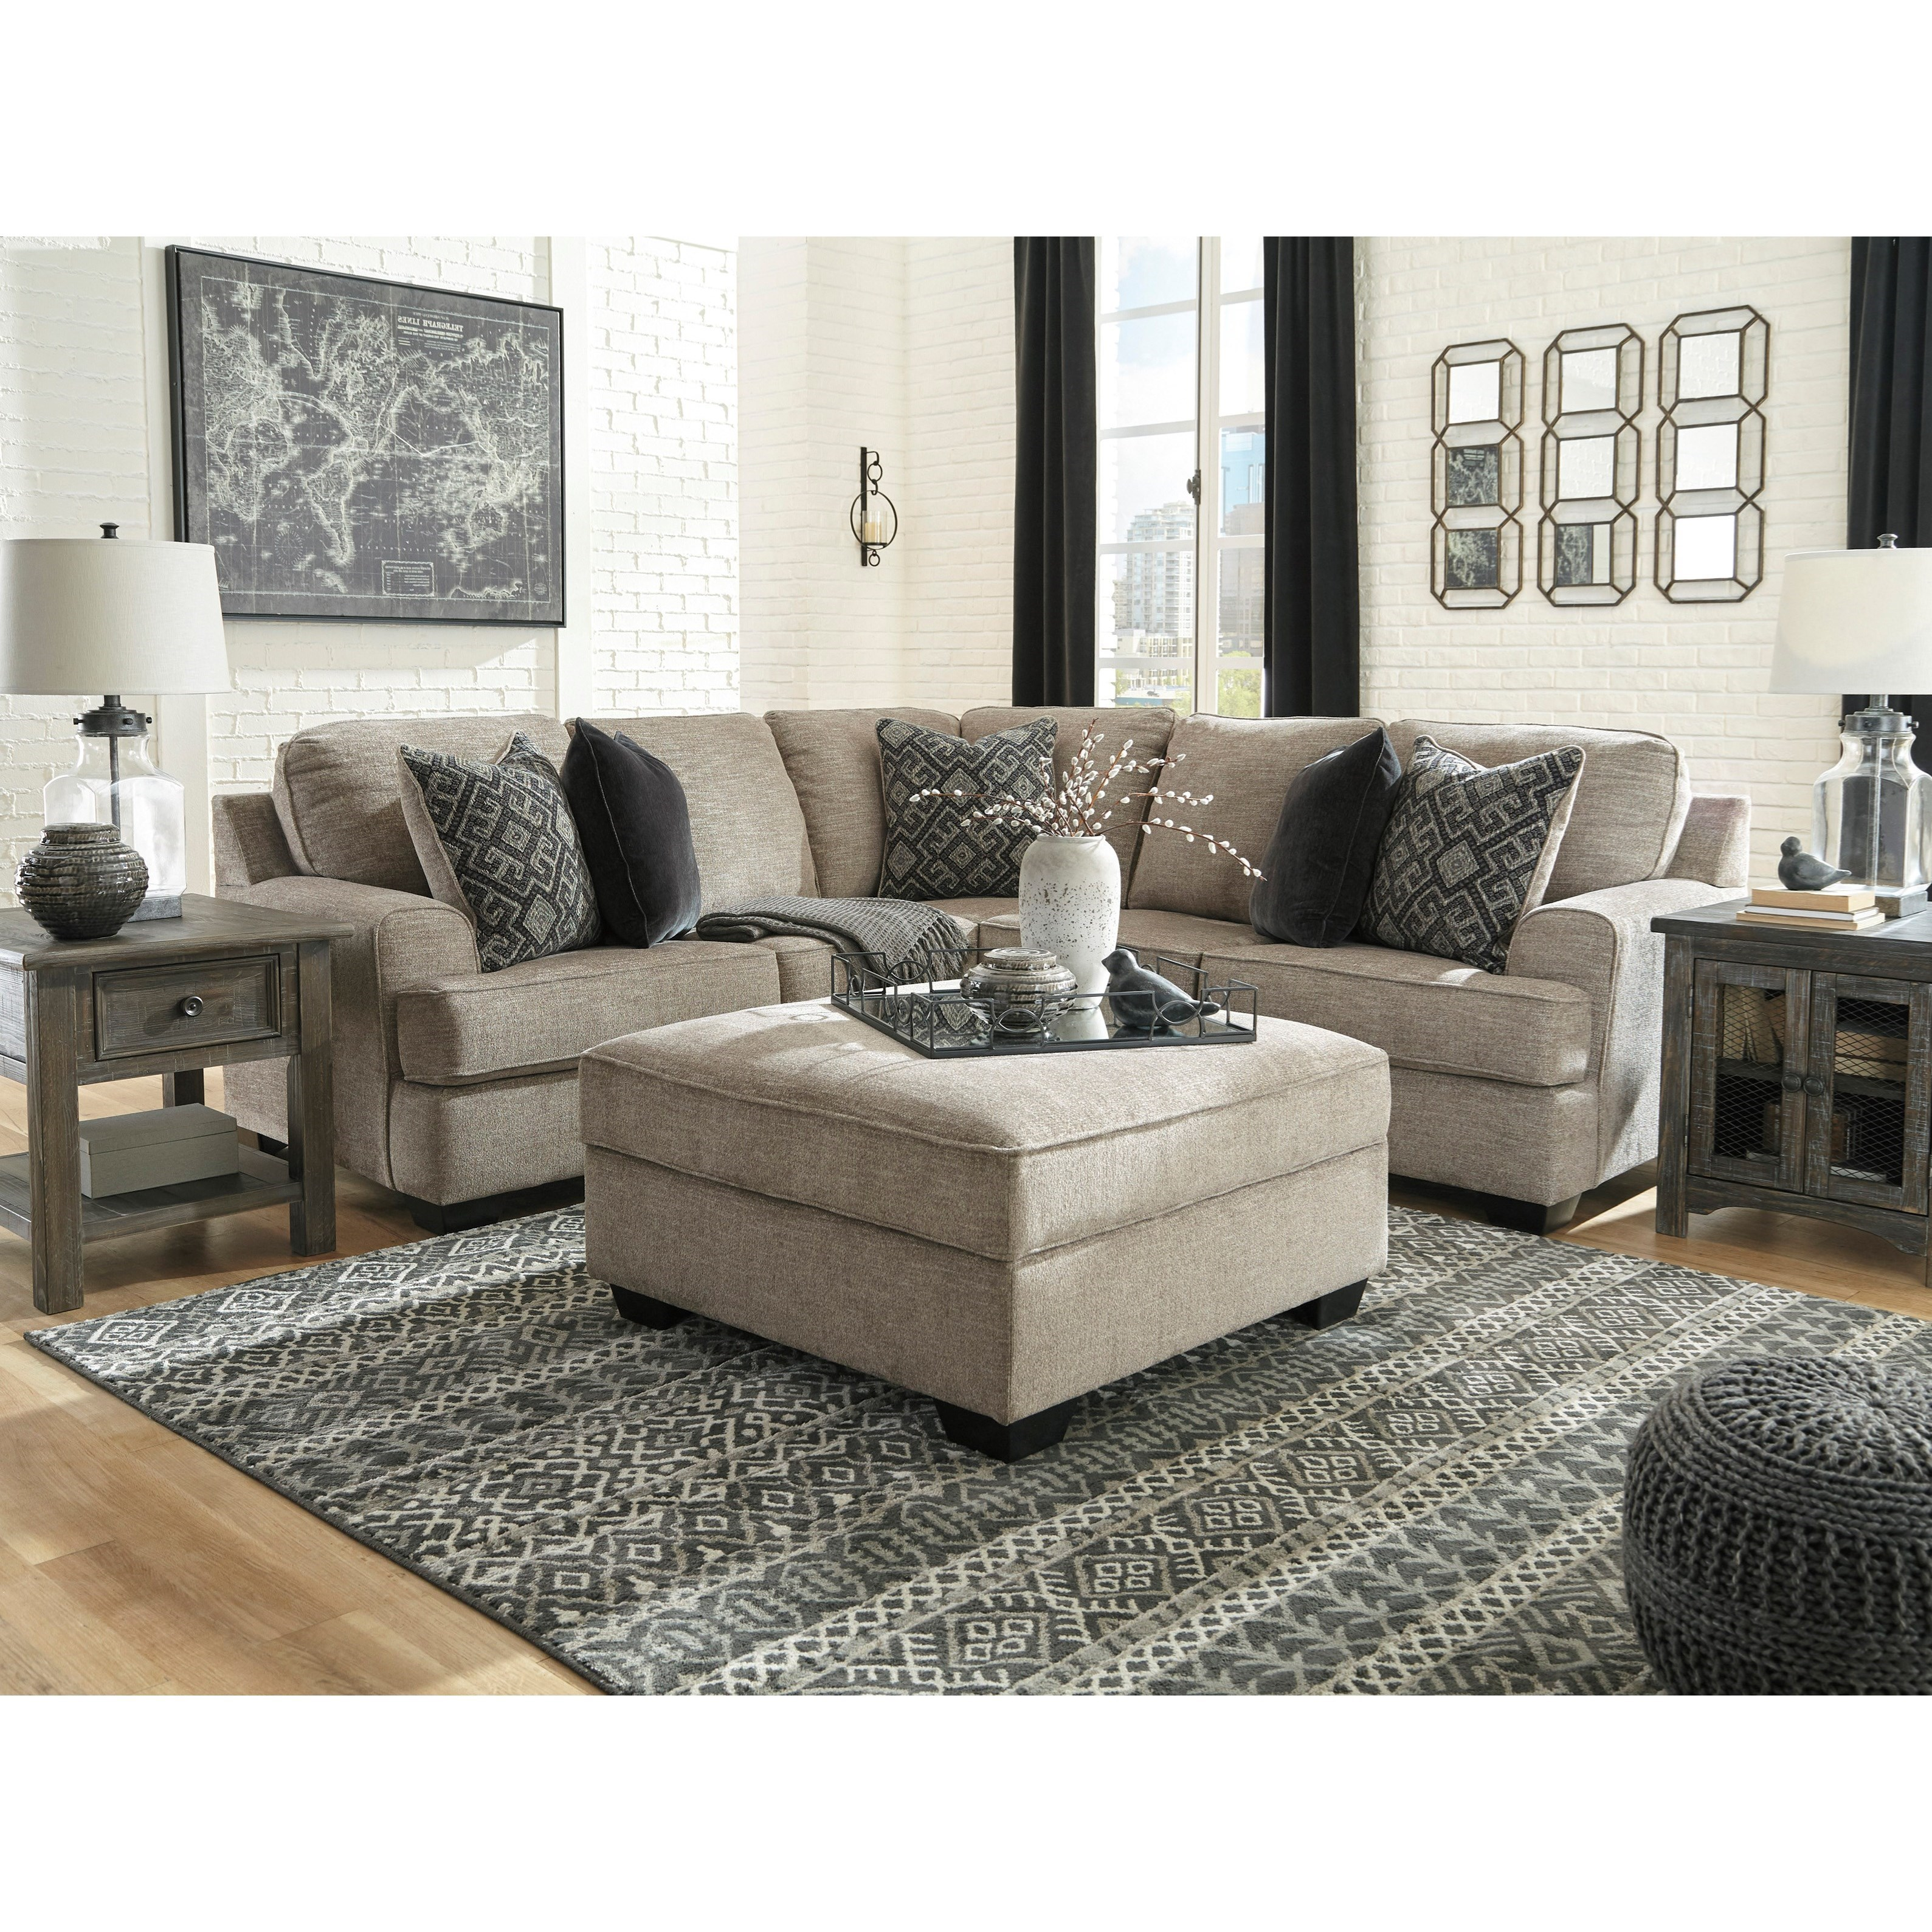 Bovarian Stationary Living Room Group by Signature Design by Ashley at Sparks HomeStore